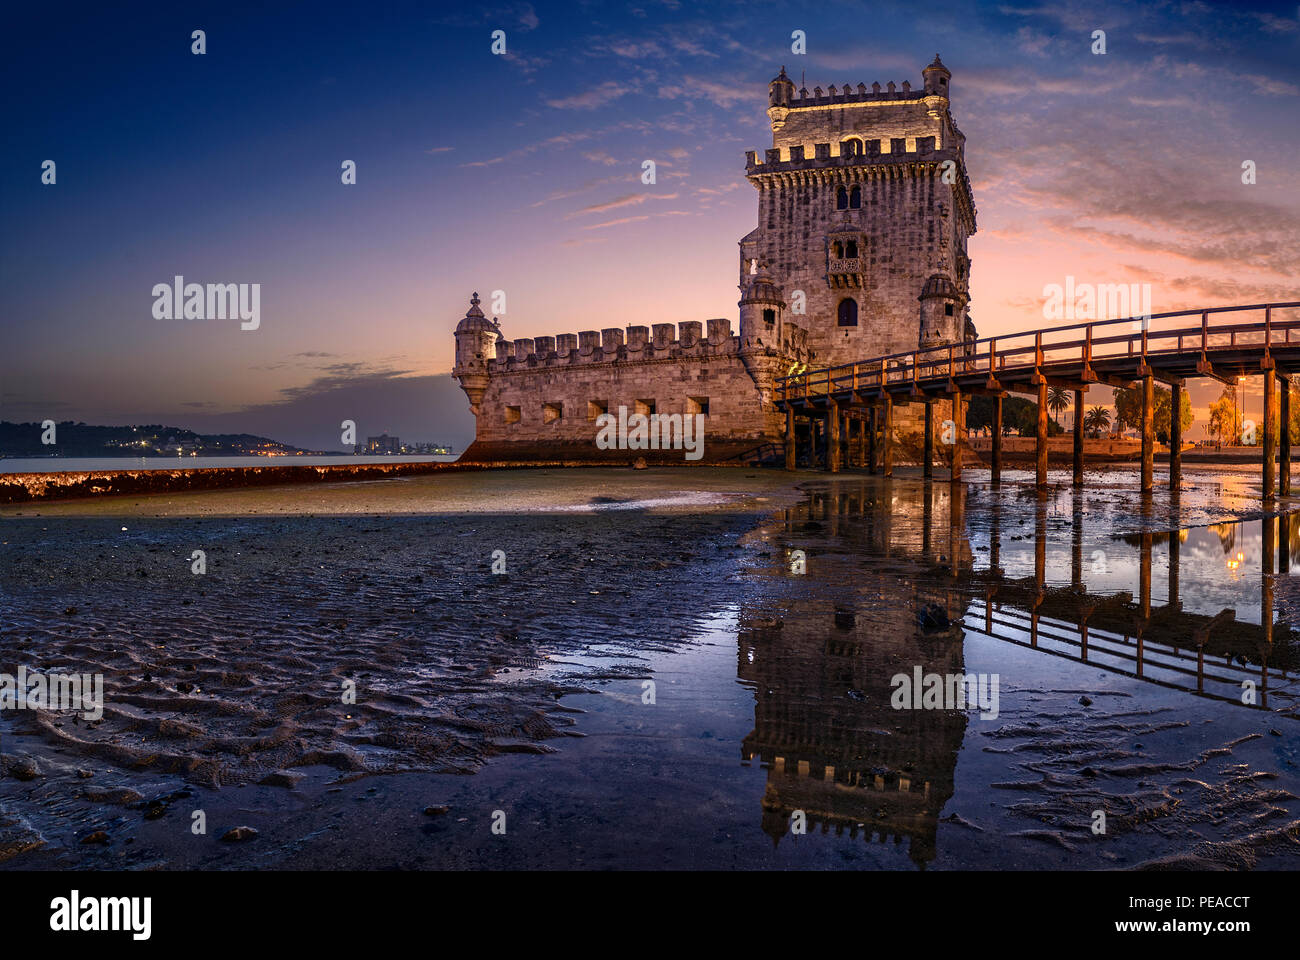 Torre of Belem, Lisbon, Portugal - Stock Image